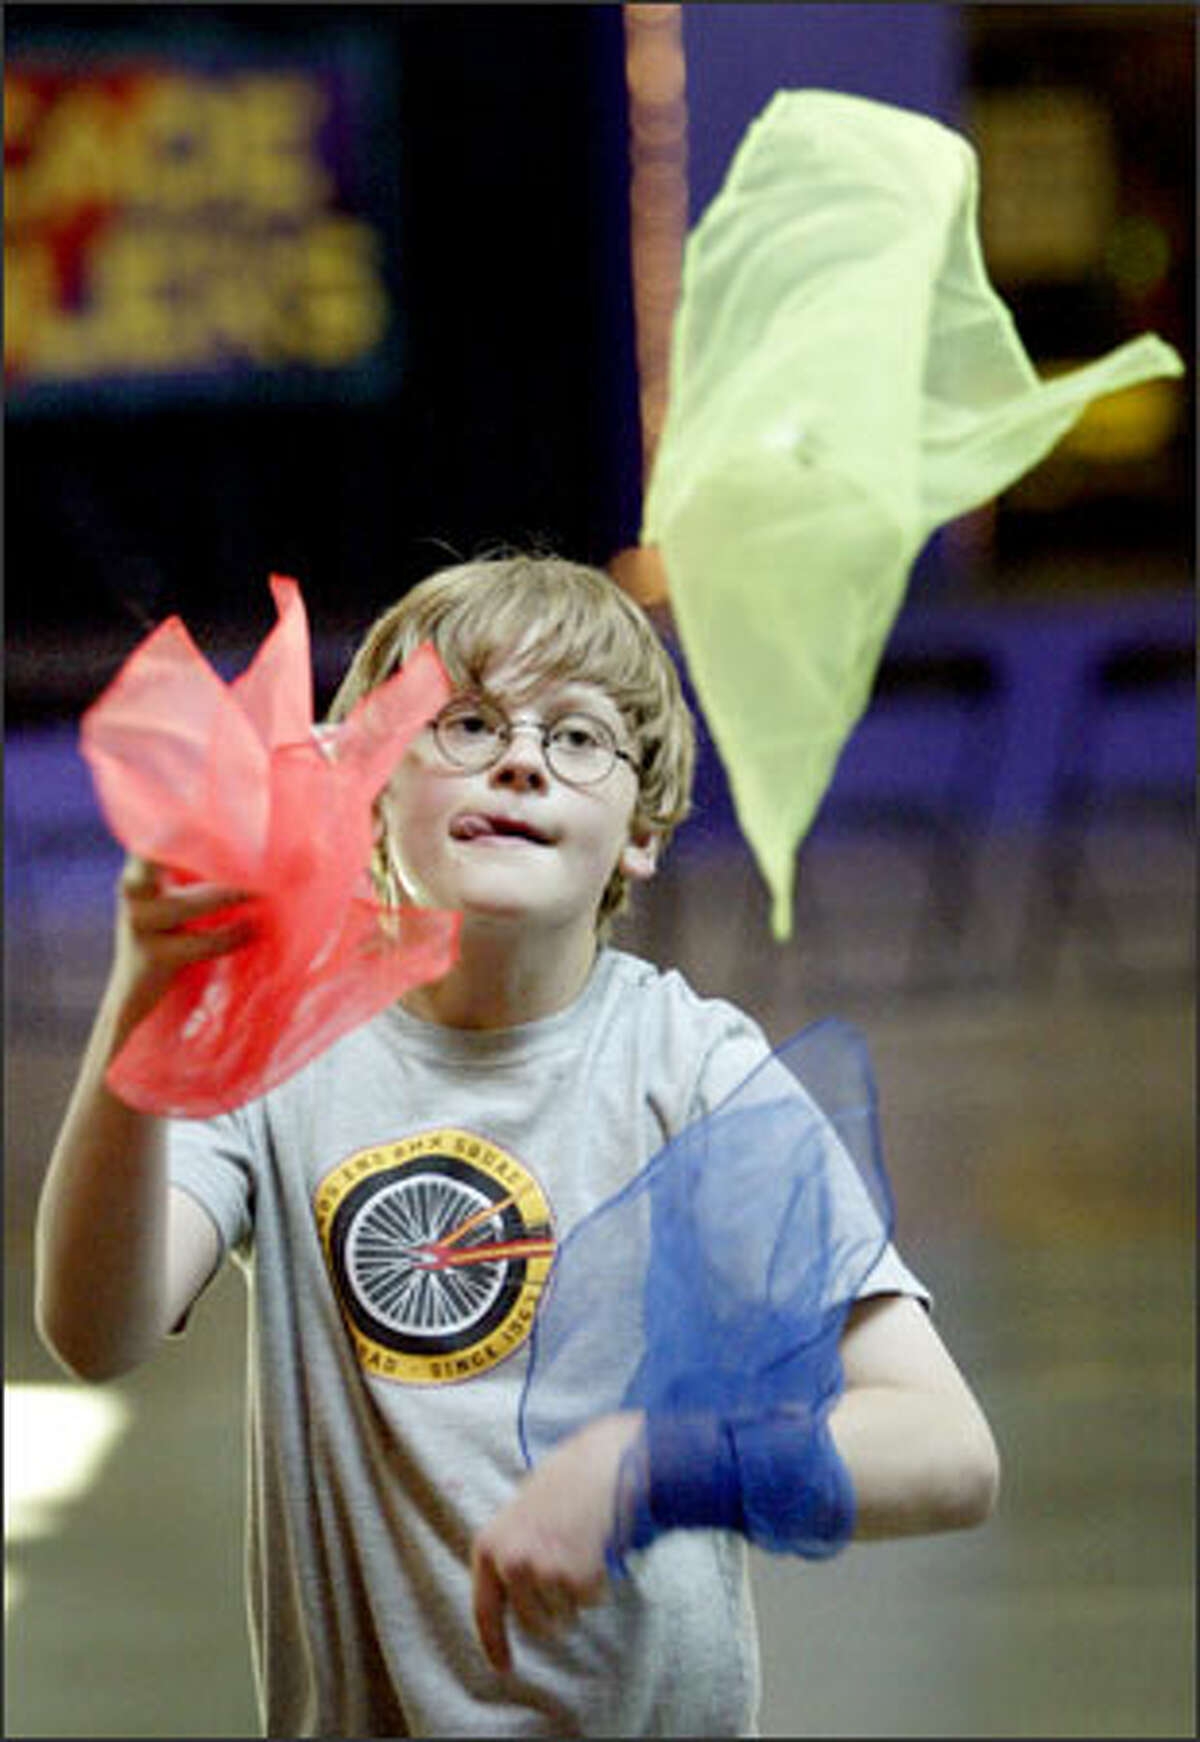 Ten-year-old Benjamin Groth of Minneapolis gets a free lesson at the Seattle International Juggling Festival in the Seattle Center's Center House. The Cascade Jugglers Club sponsored the free festival.